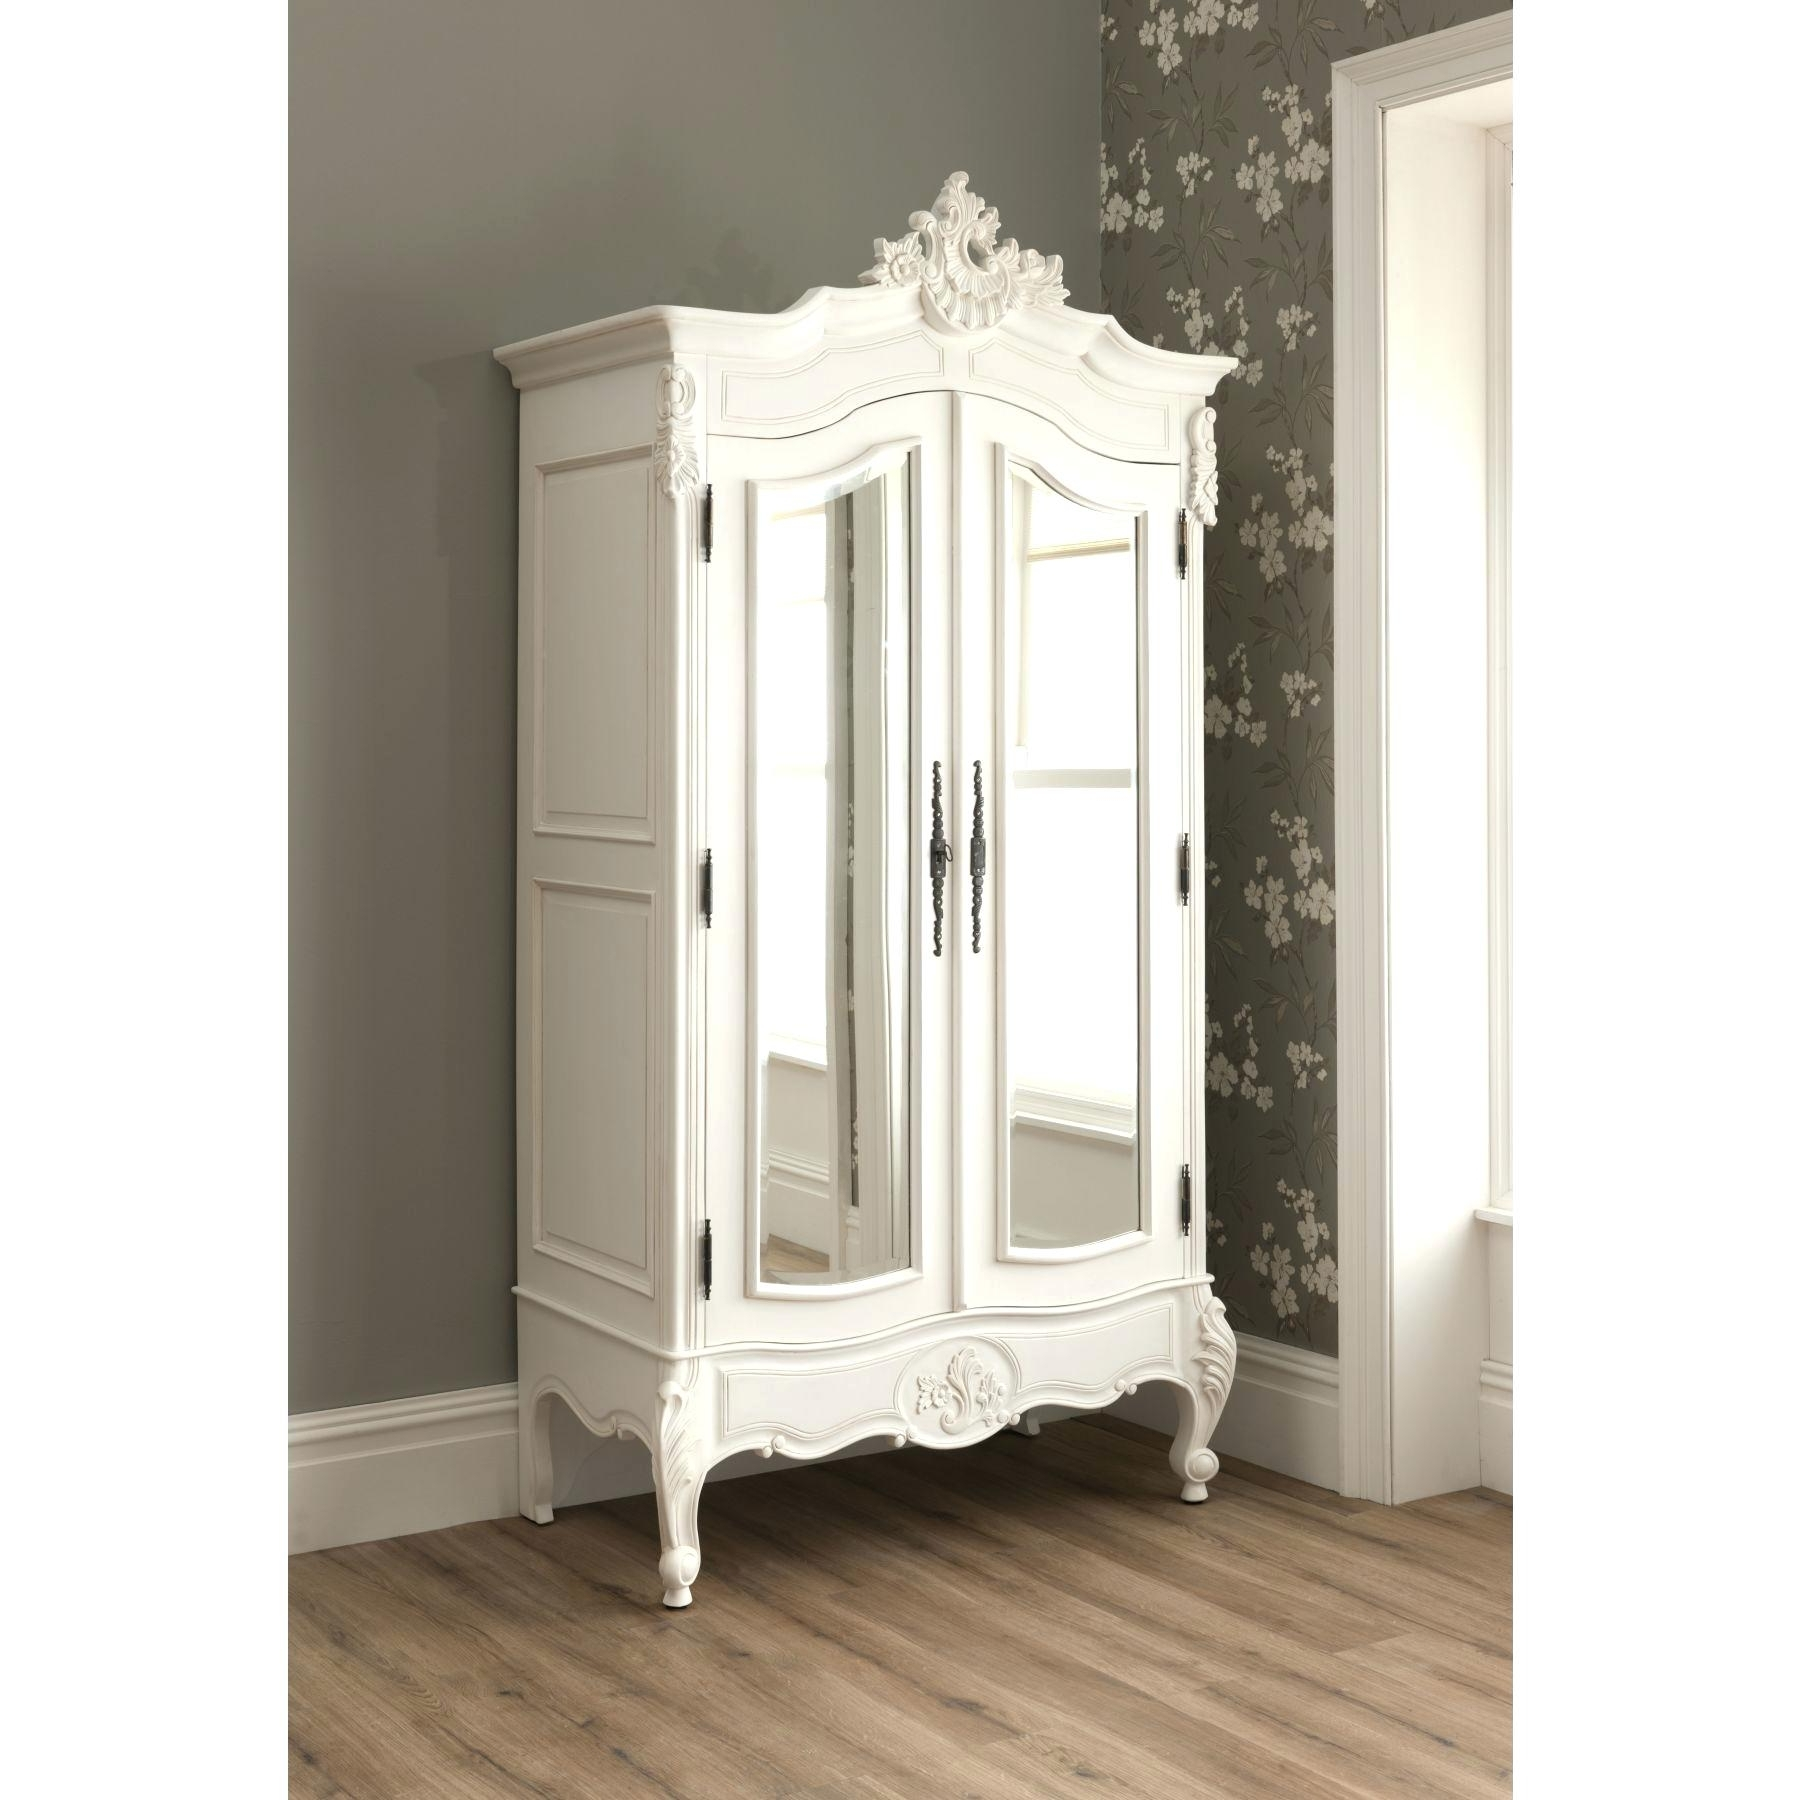 Most Current White Armoire Wardrobe S Cheap French With Mirror – Brashmagazine For Wicker Armoire Wardrobes (View 8 of 15)